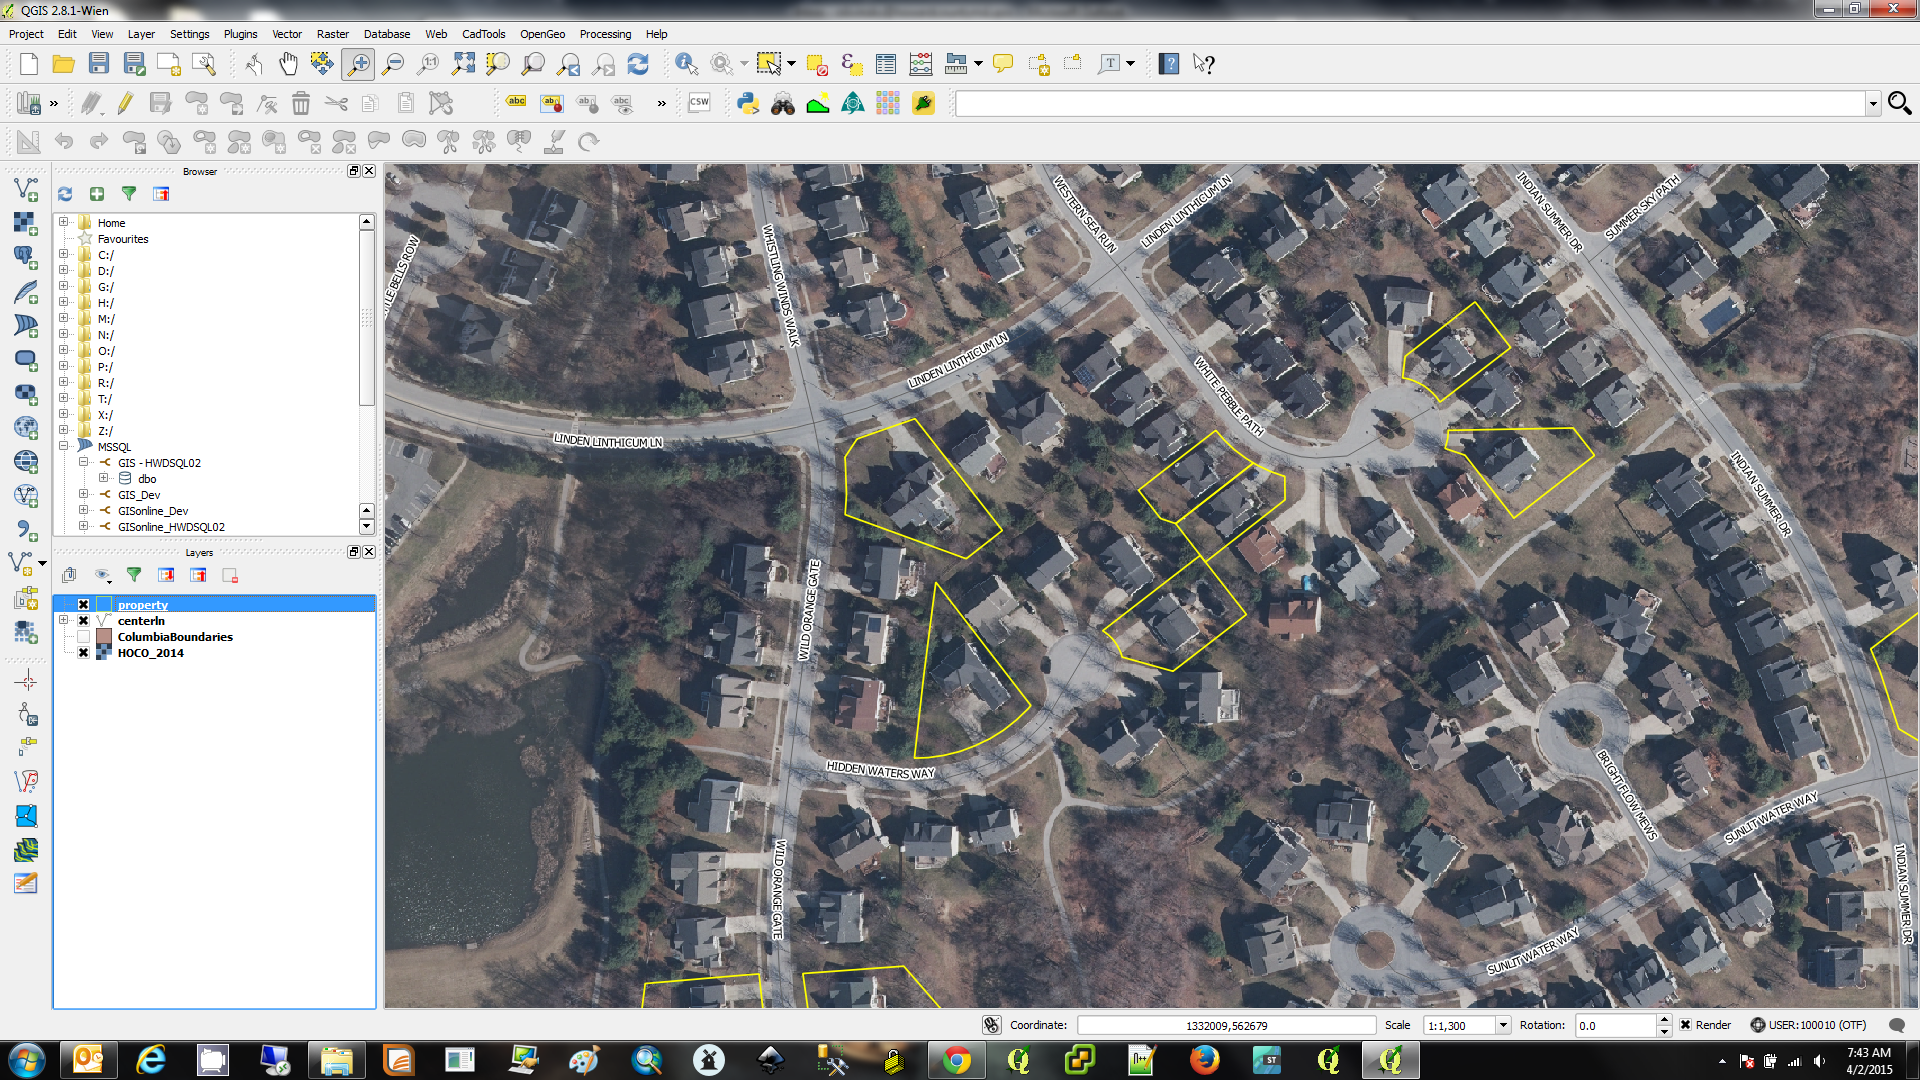 Bug report 12501 qgis does consistantly display all features of shpg gumiabroncs Gallery